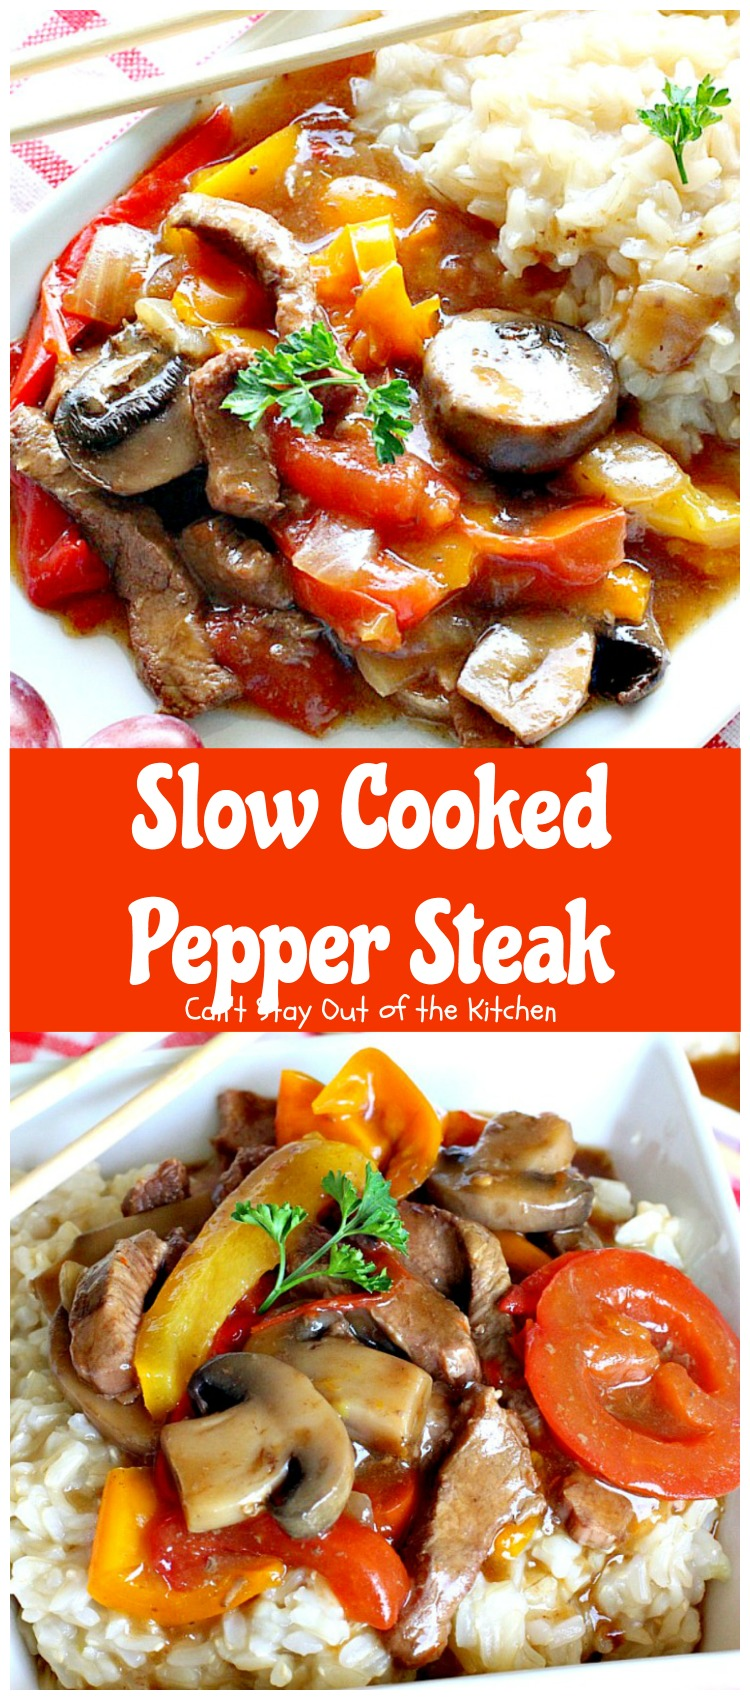 Slow Cooked Pepper Steak | Can't Stay Out of the Kitchen